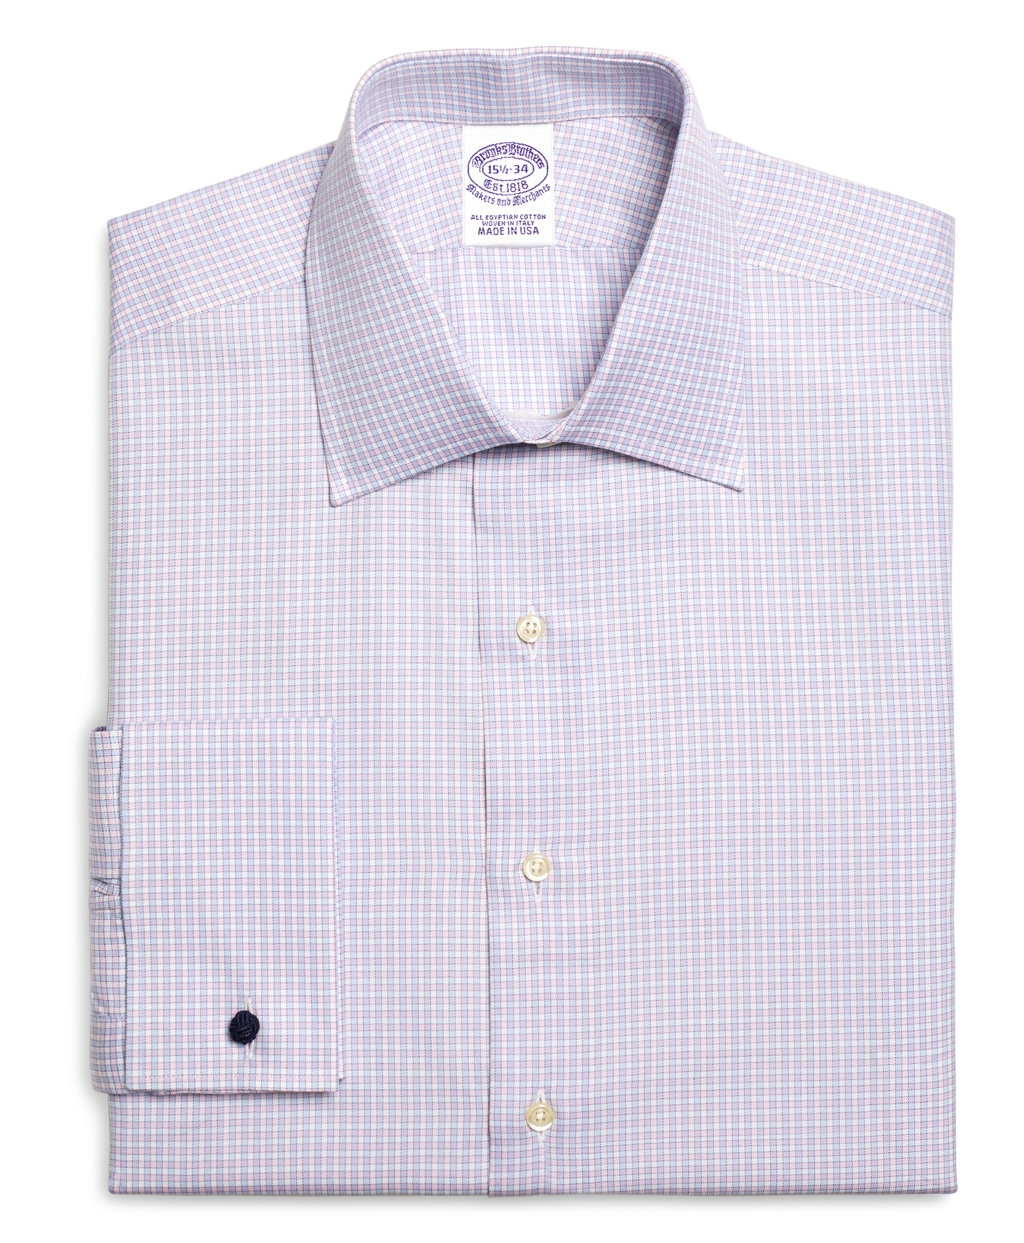 Lyst Brooks Brothers Egyptian Cotton Extraslim Fit